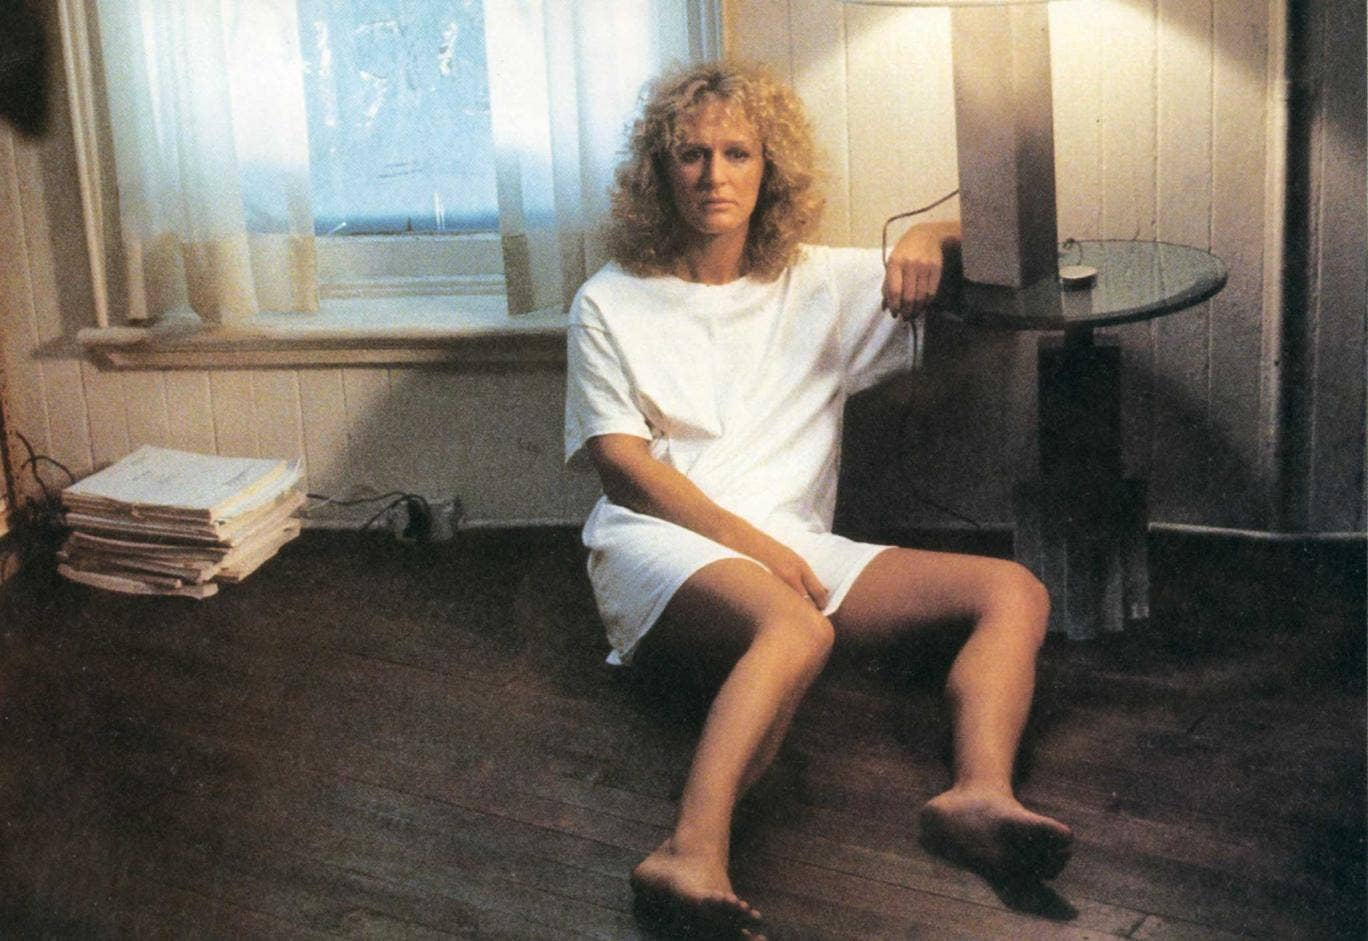 Implausibly dramatic: Glenn Close from the film 'Fatal Attraction', to which this book is compared